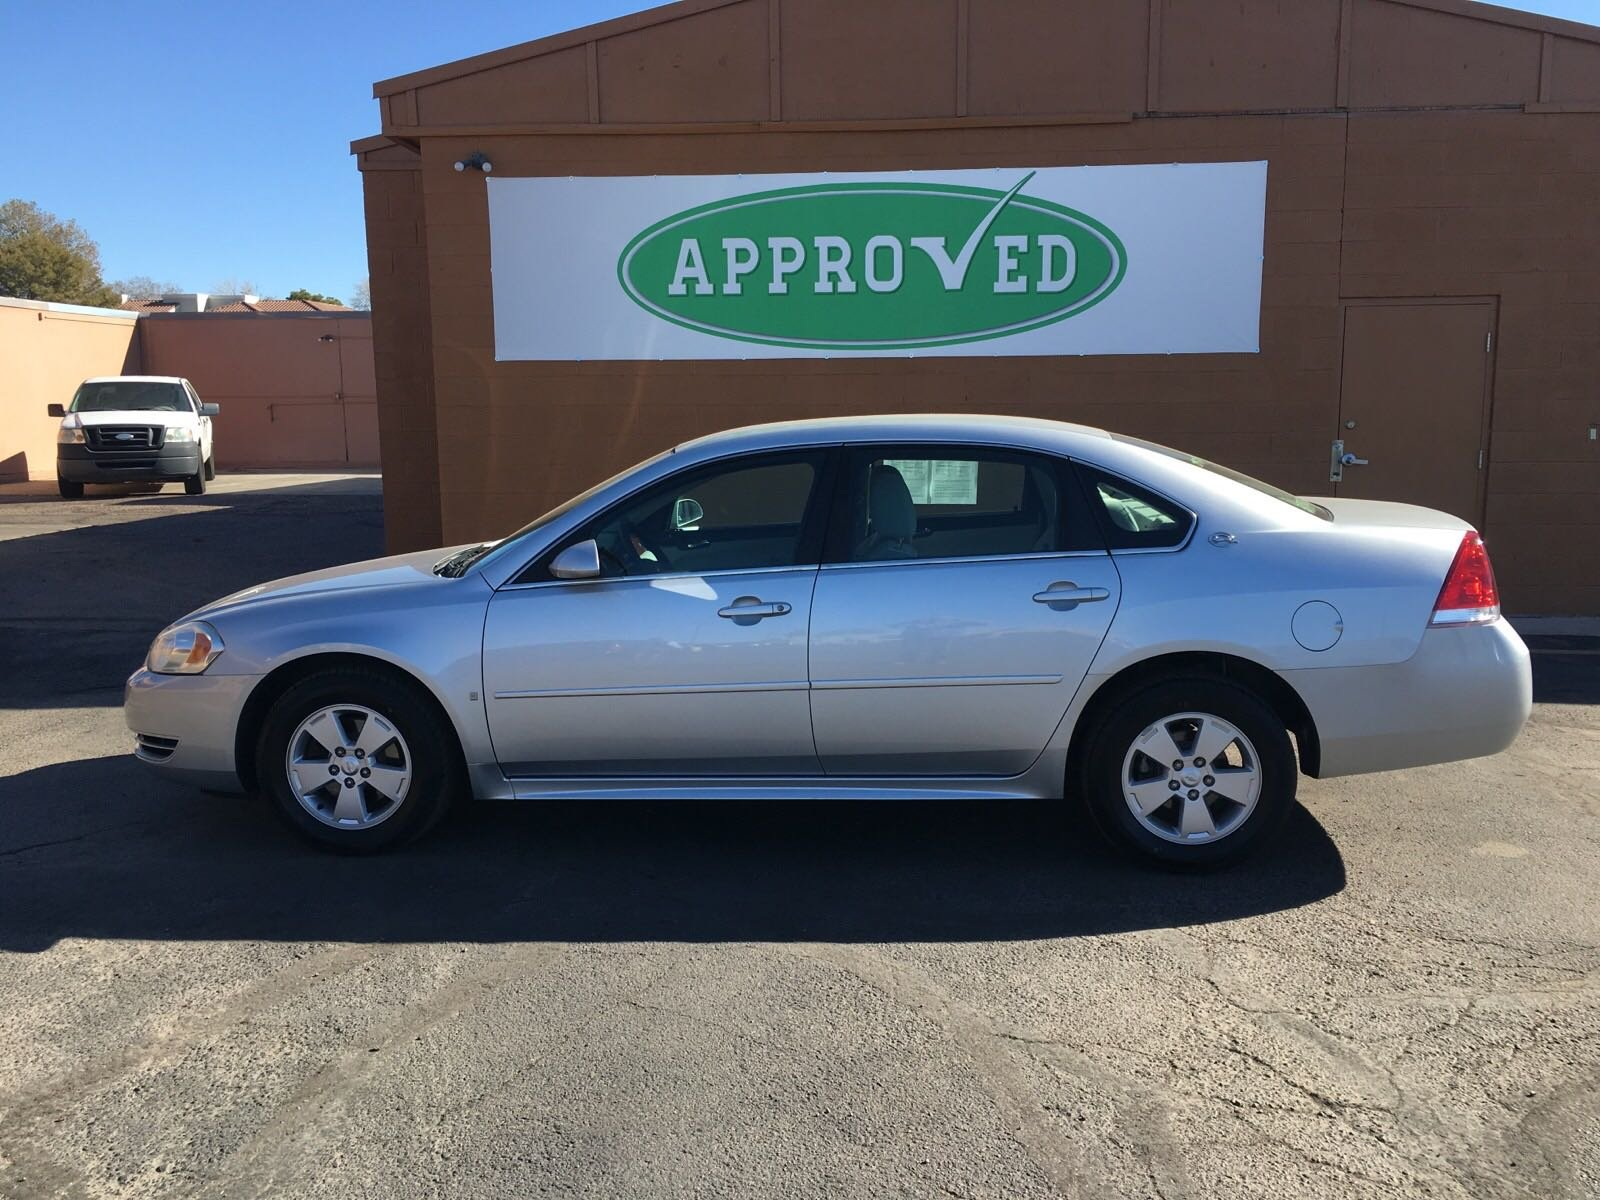 Pre Owned 2009 Chevrolet Impala 3 5L LT 4dr Car in Phoenix